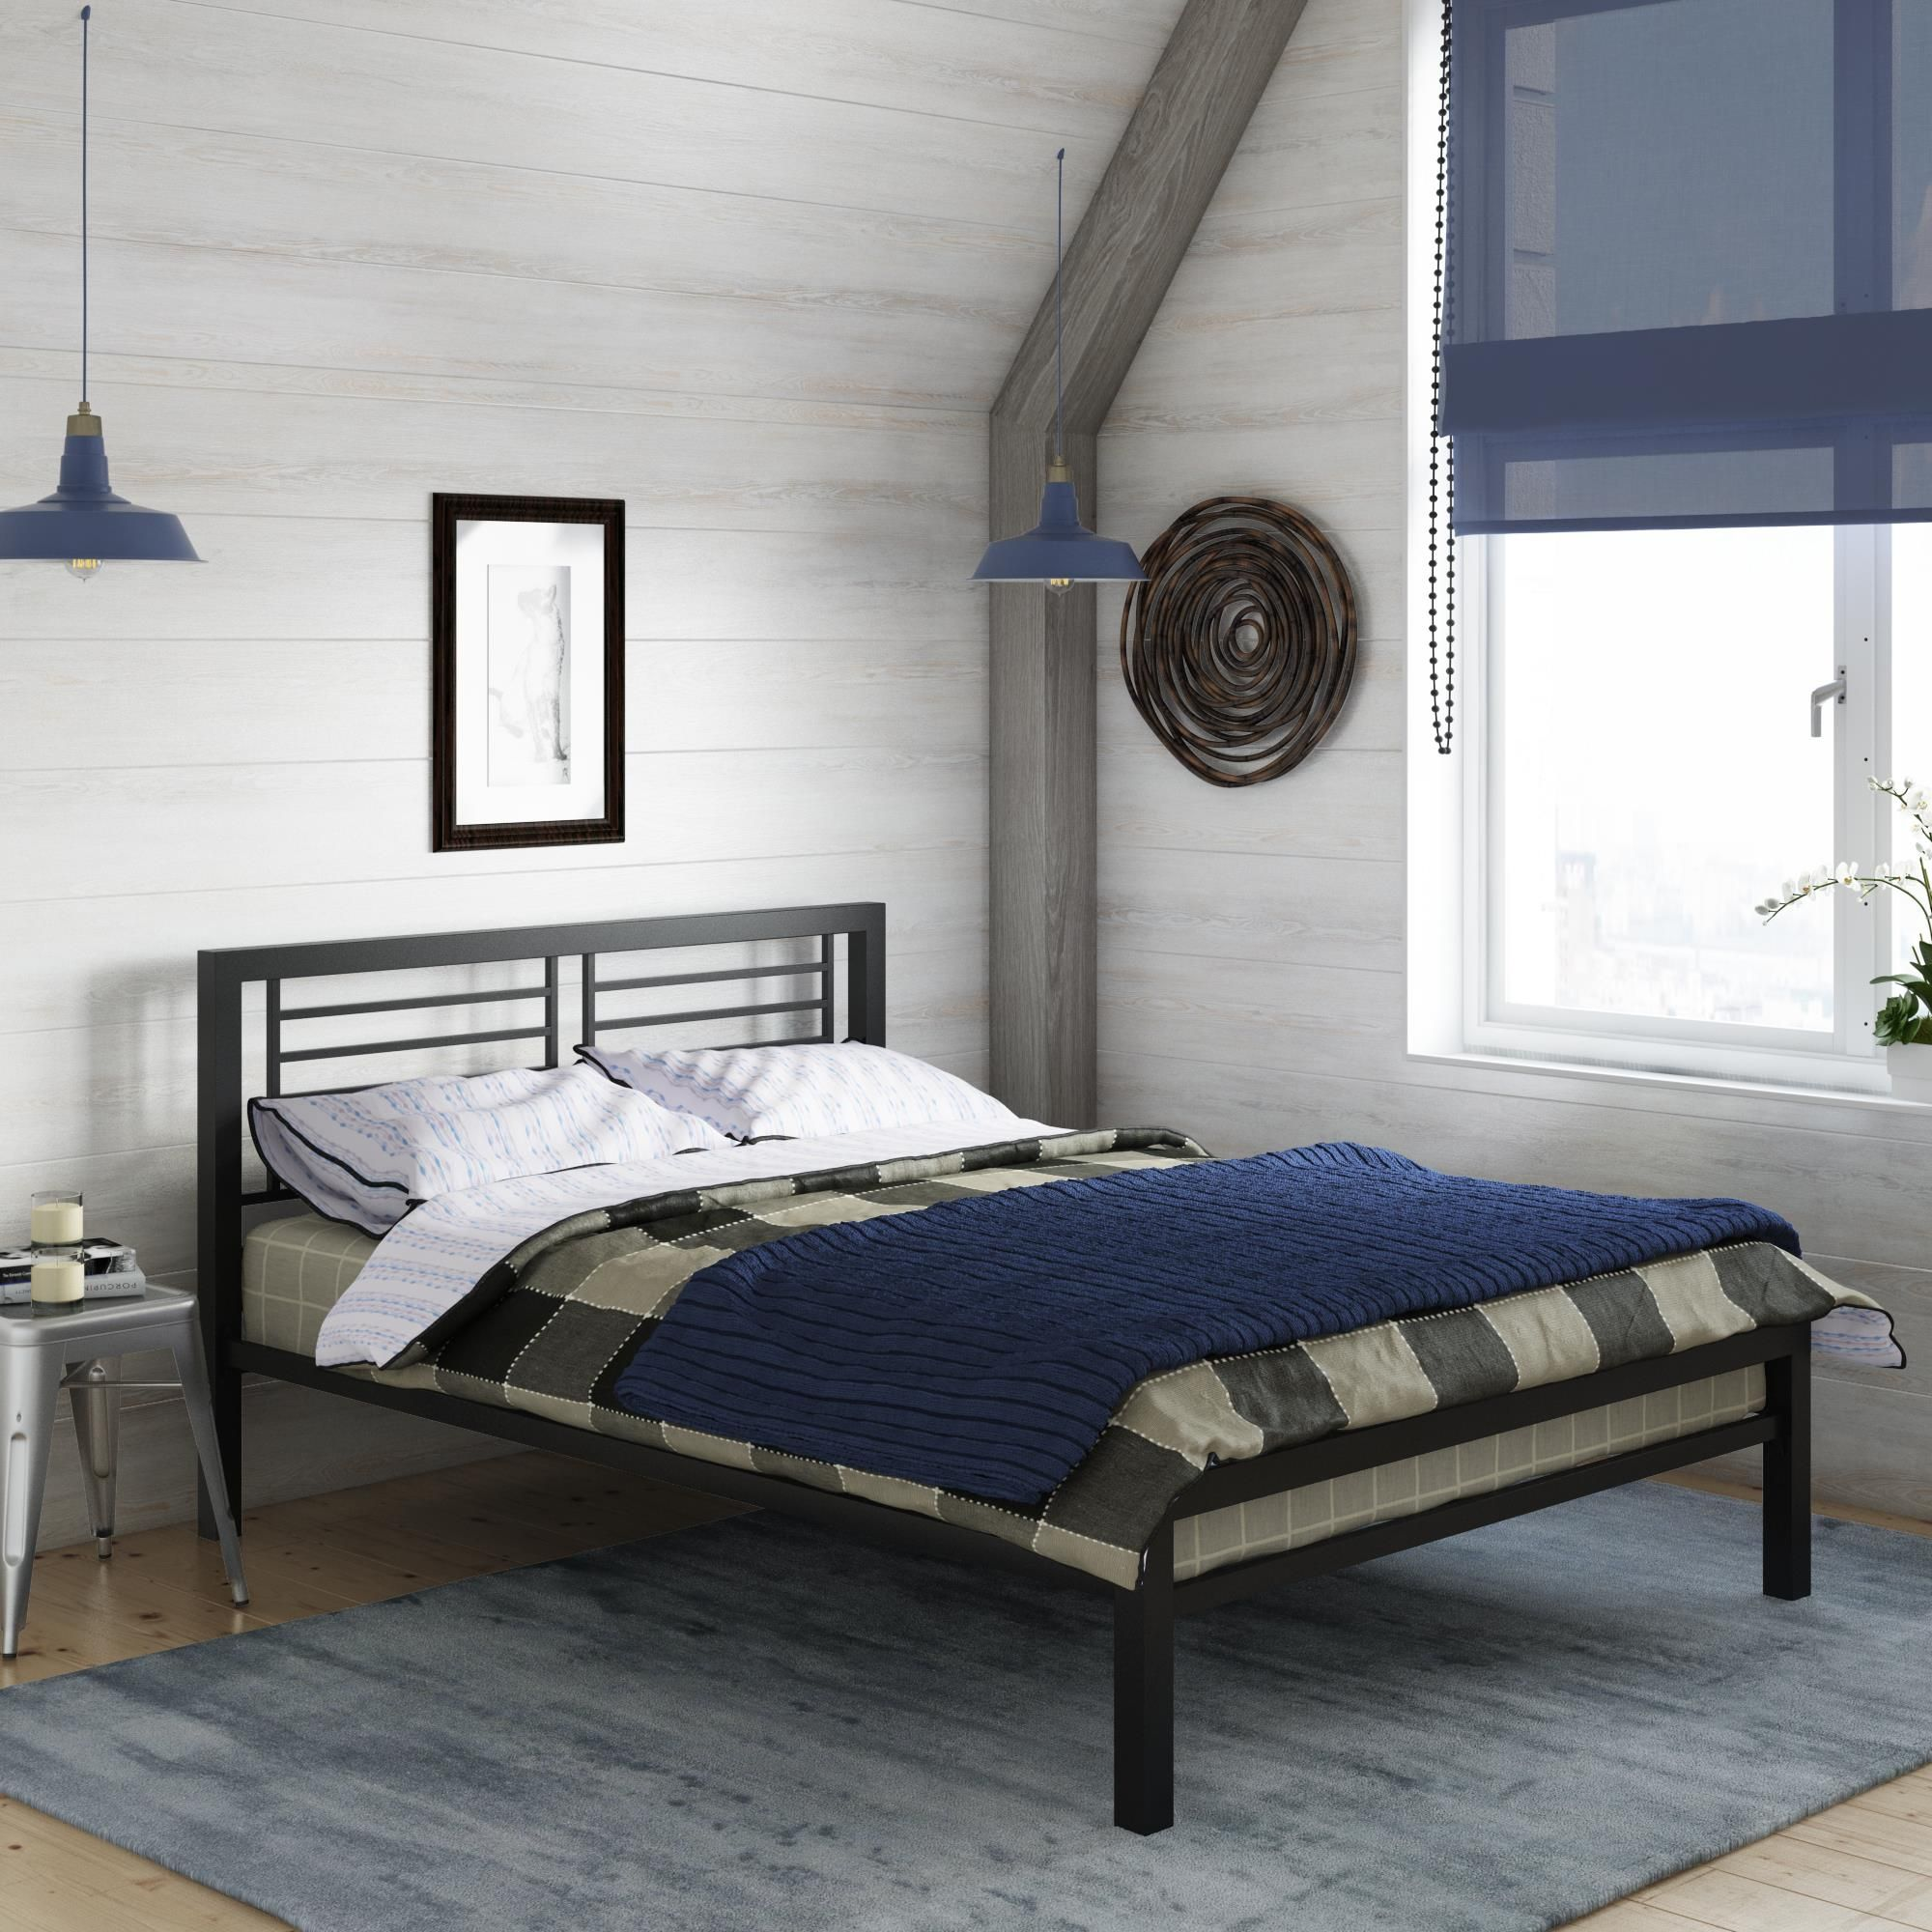 Home In 2020 Metal Platform Bed Kids Bed Frames Twin Bed Frame